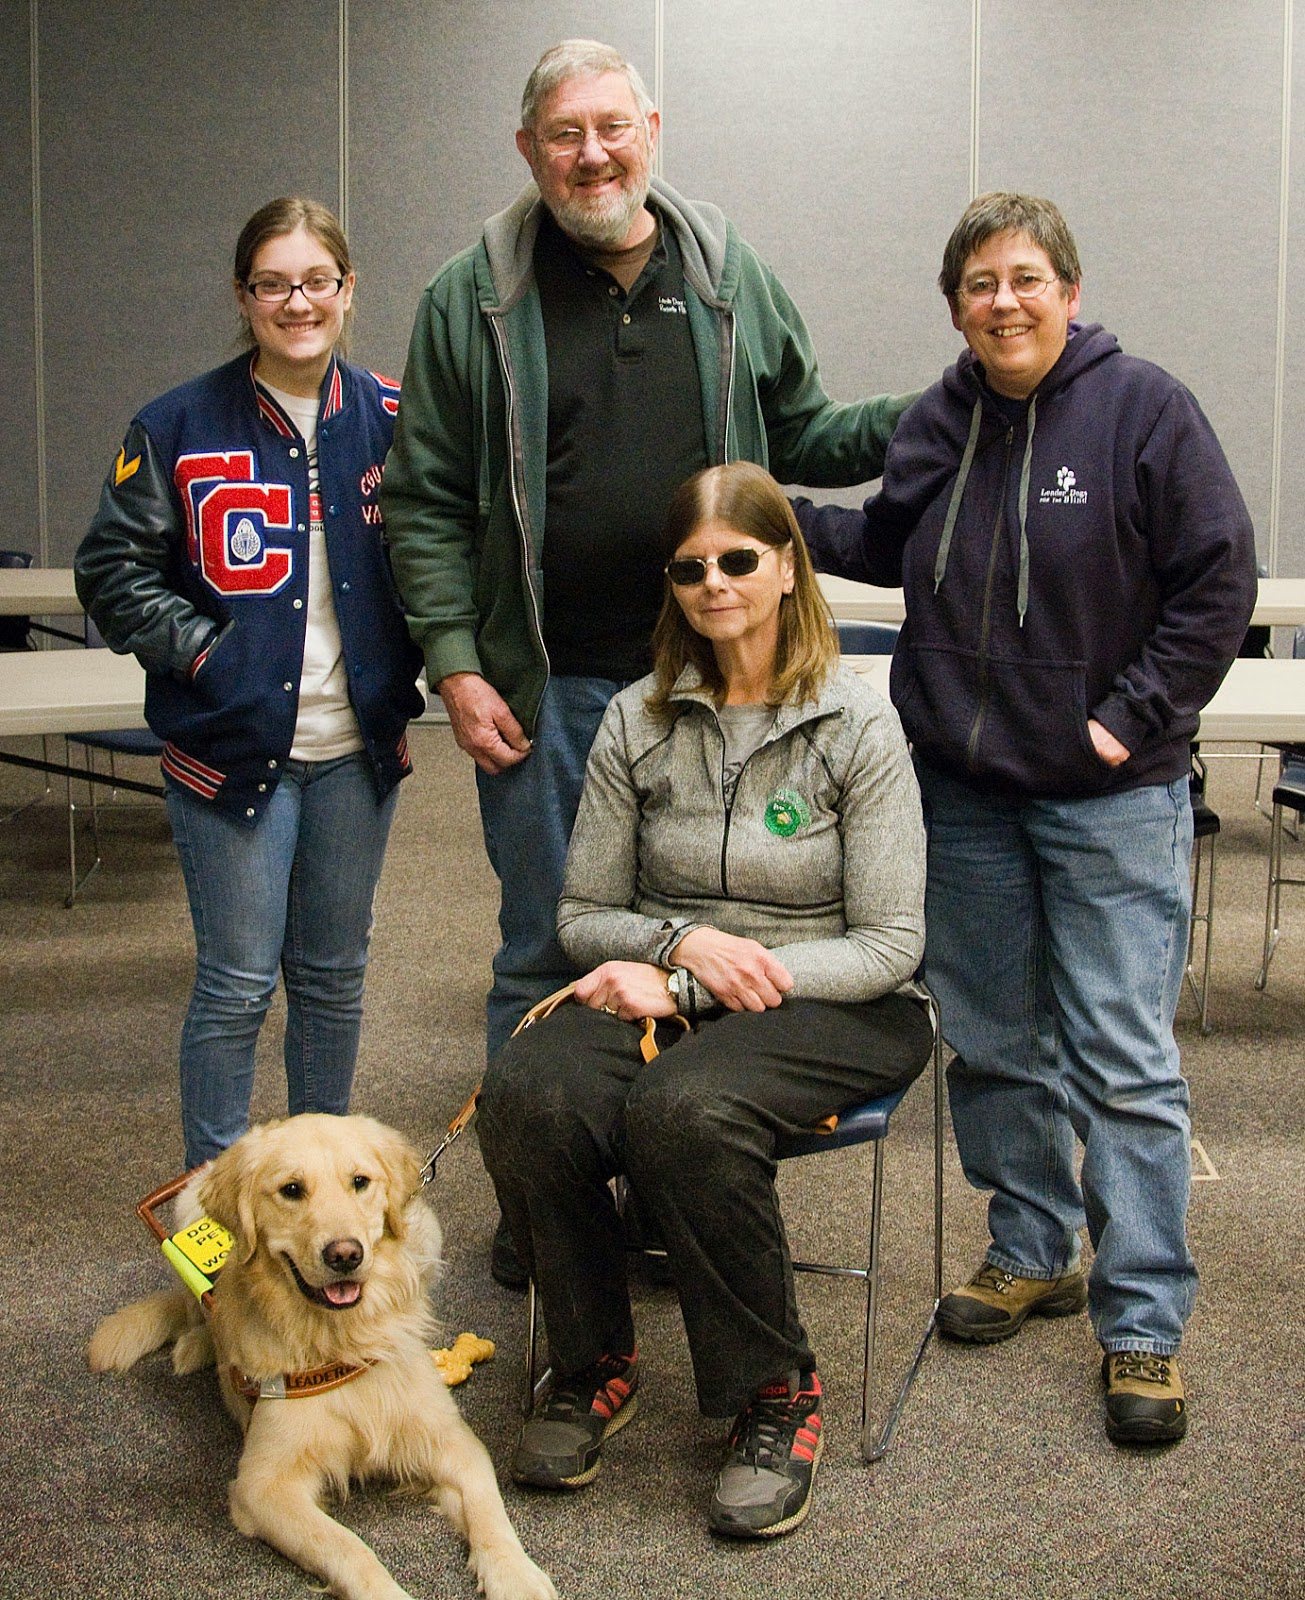 This is a group shot of the teenager (far left, standing), the man (middle, standing), the short woman (far right, standing), the woman with the sunglasses (sitting in a chair in front of the other three) and the golden retriever lying on the floor to the right of the sitting woman. Everyone, even the dog is smiling.